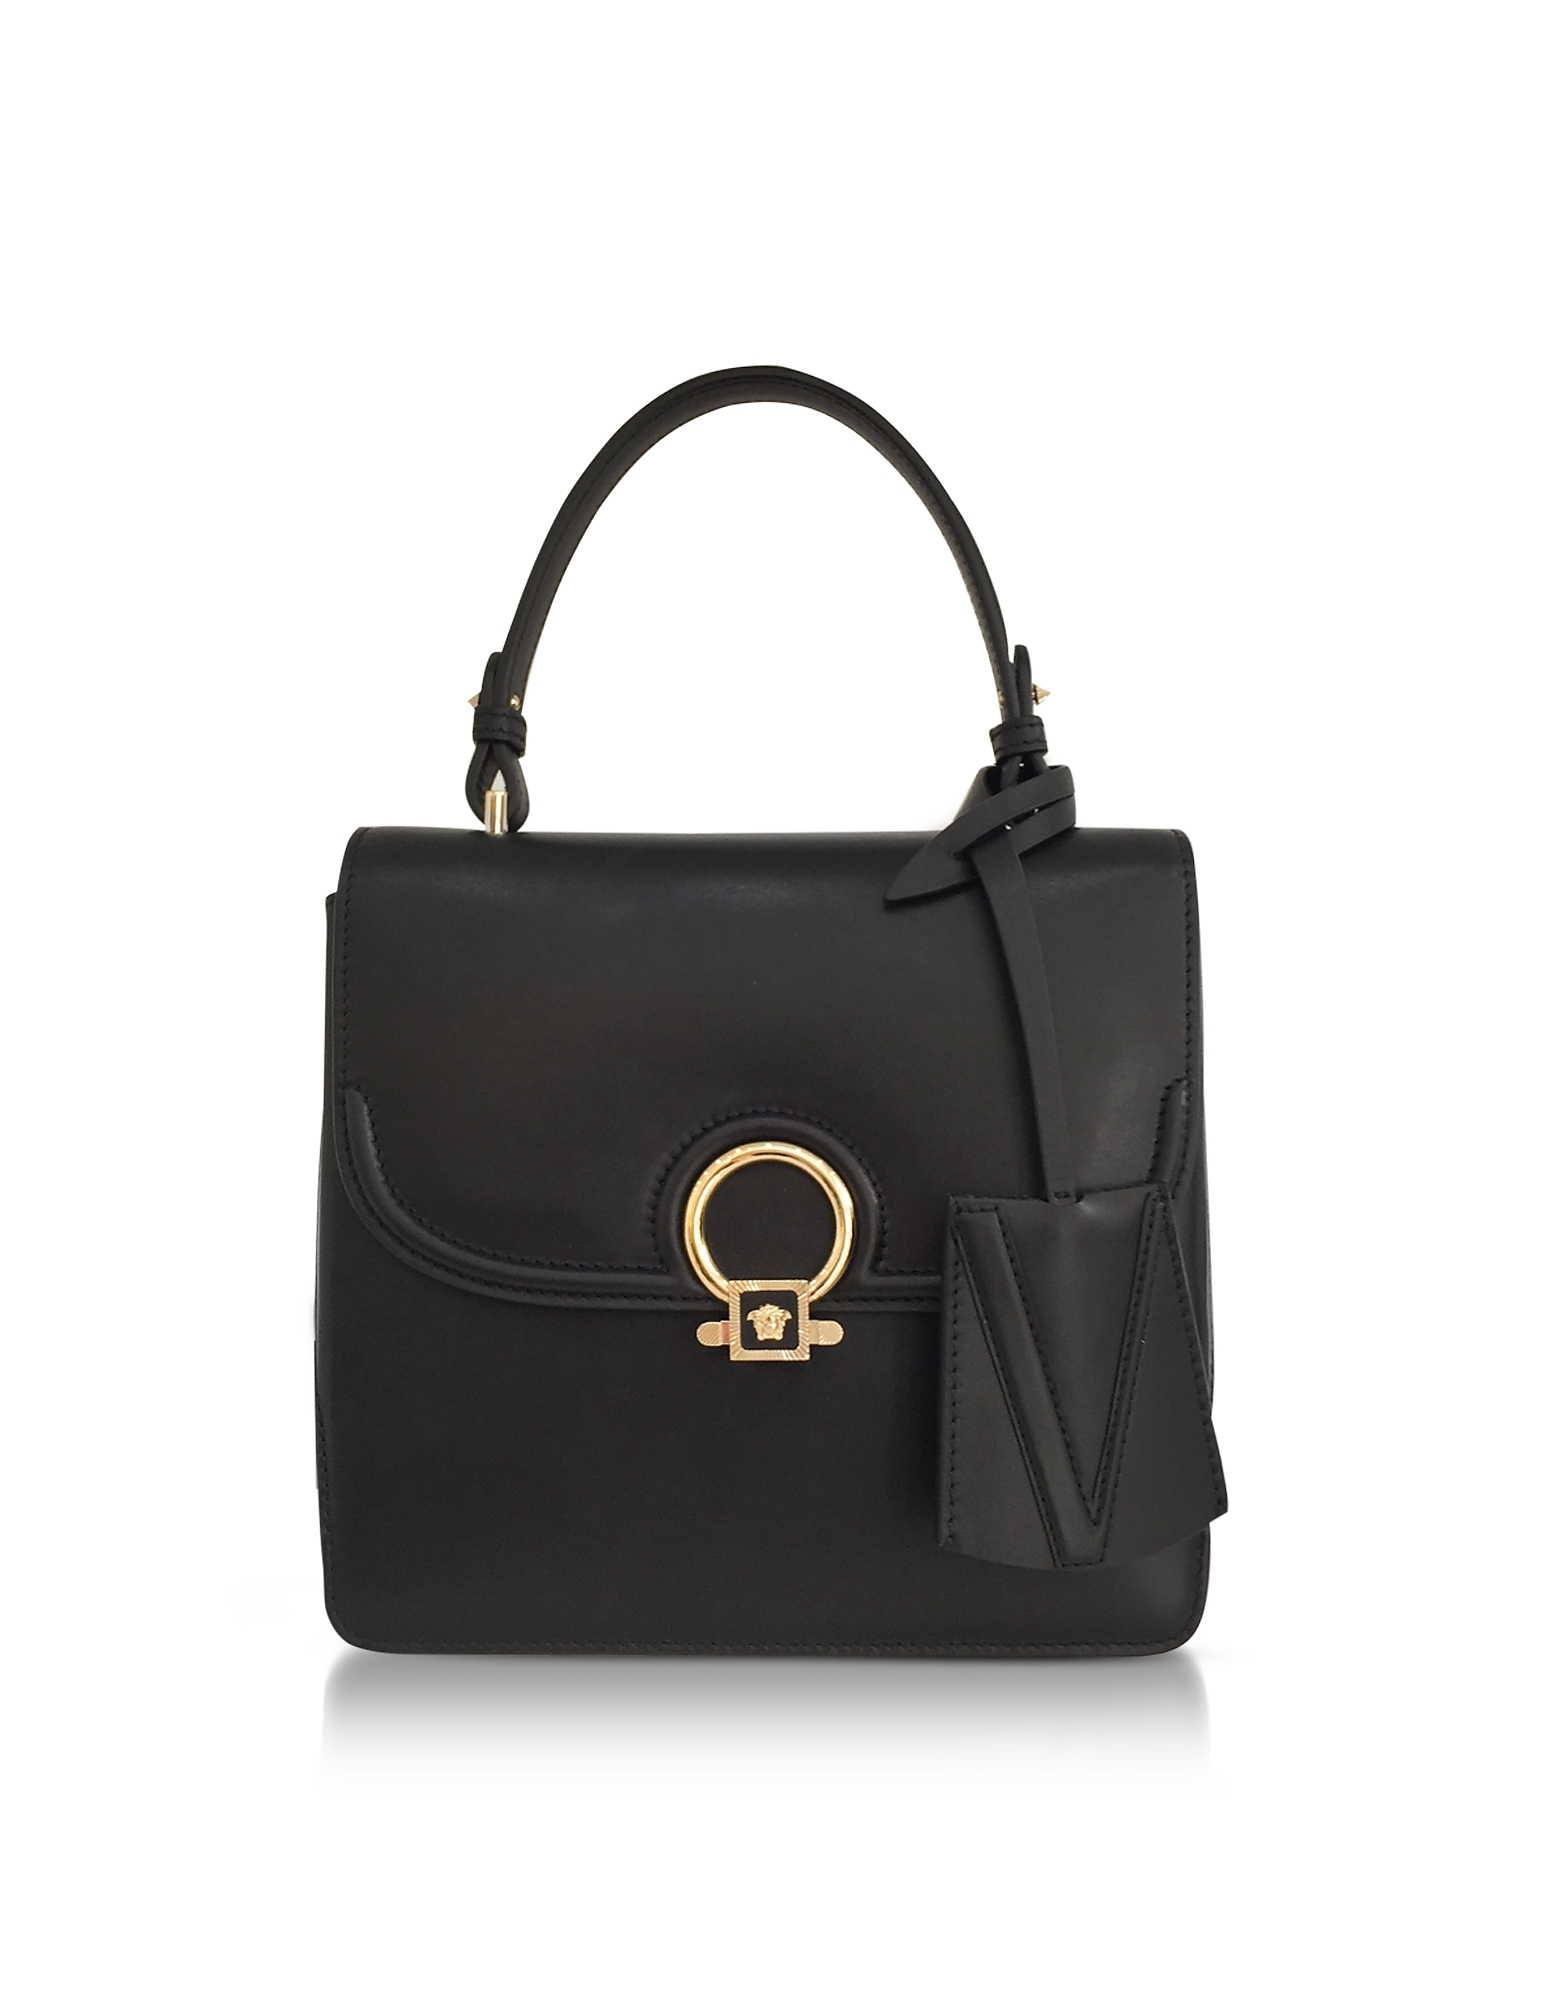 Versace Handbags, DV One Black Leather Medium Shoulder Bag w/Fully Charged Suede Lateral Gussets